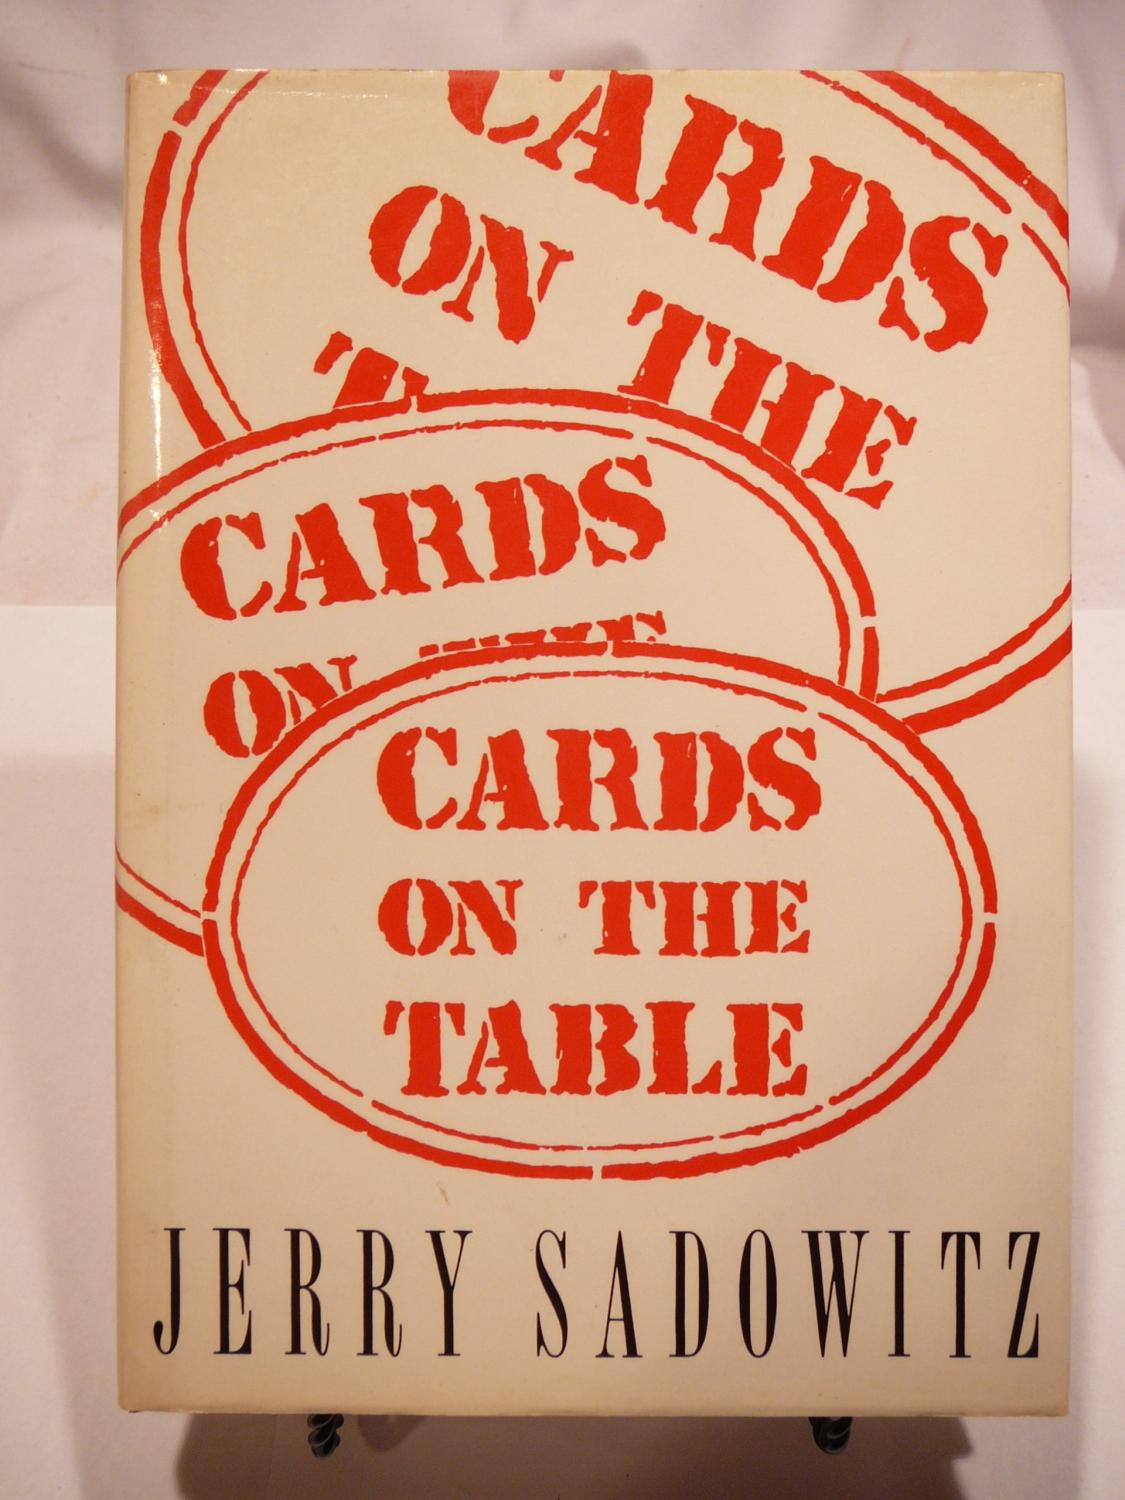 Cards on the Table Sadowitz, Jerry Near Fine Hardcover Book is Mint with no marks or writings, pages bright and clean, binding sound. Dust jacket in very good condition with light shelf wear and very light